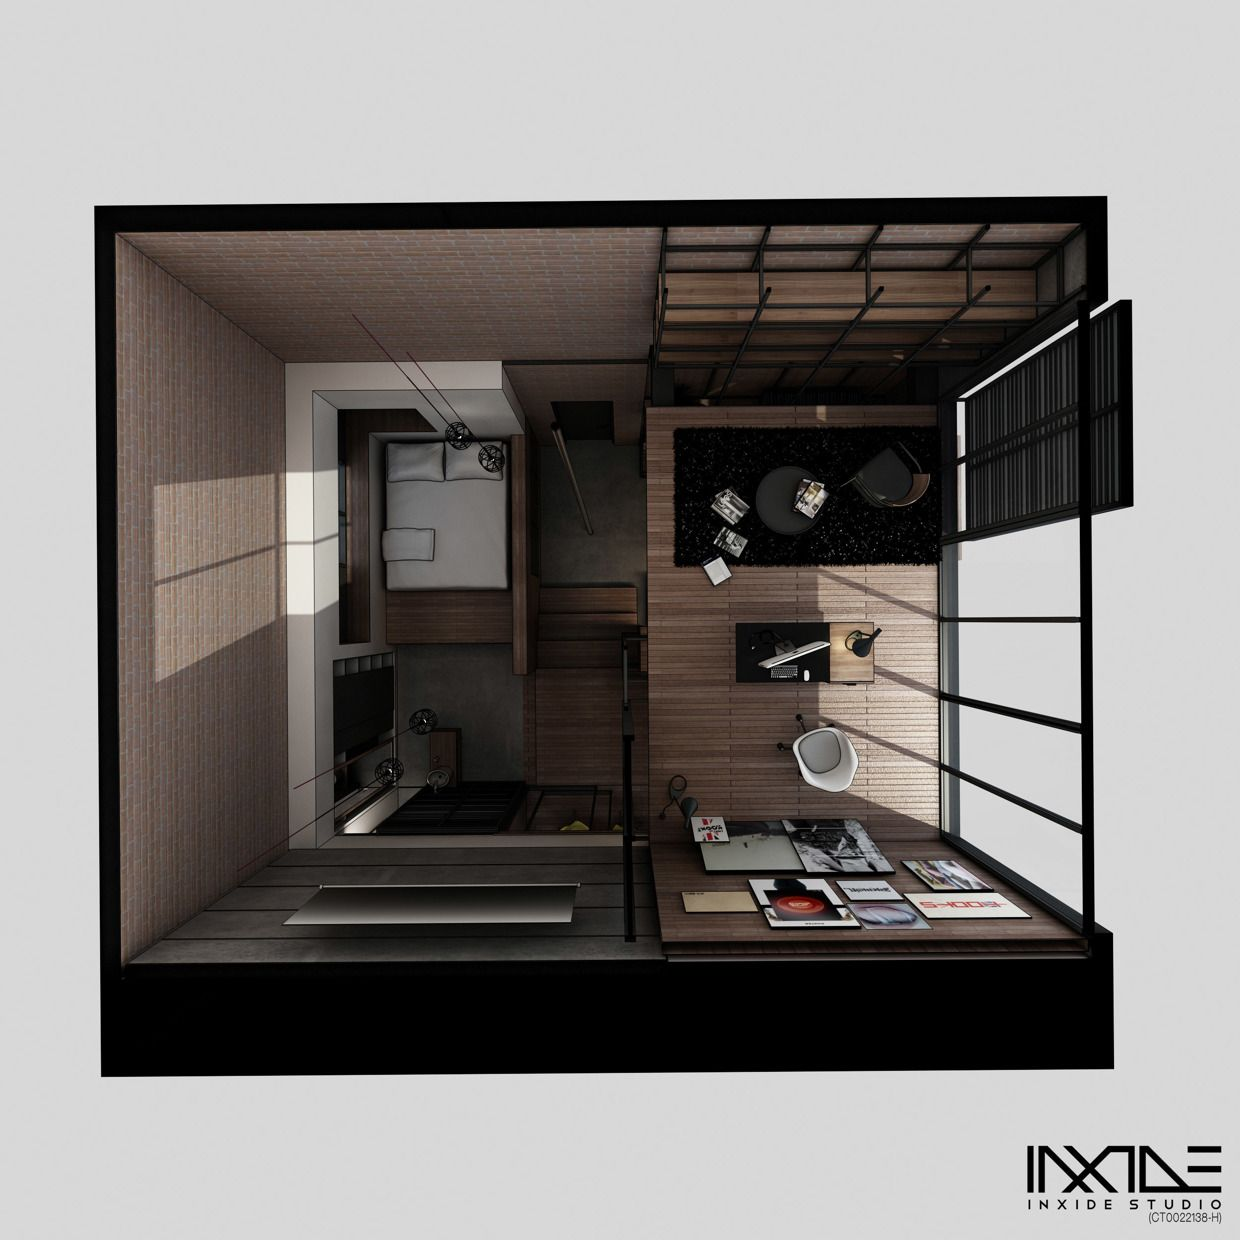 designer anway aljugrey from inxide studio has designed a modern compact house that can meet - Compact House Interior